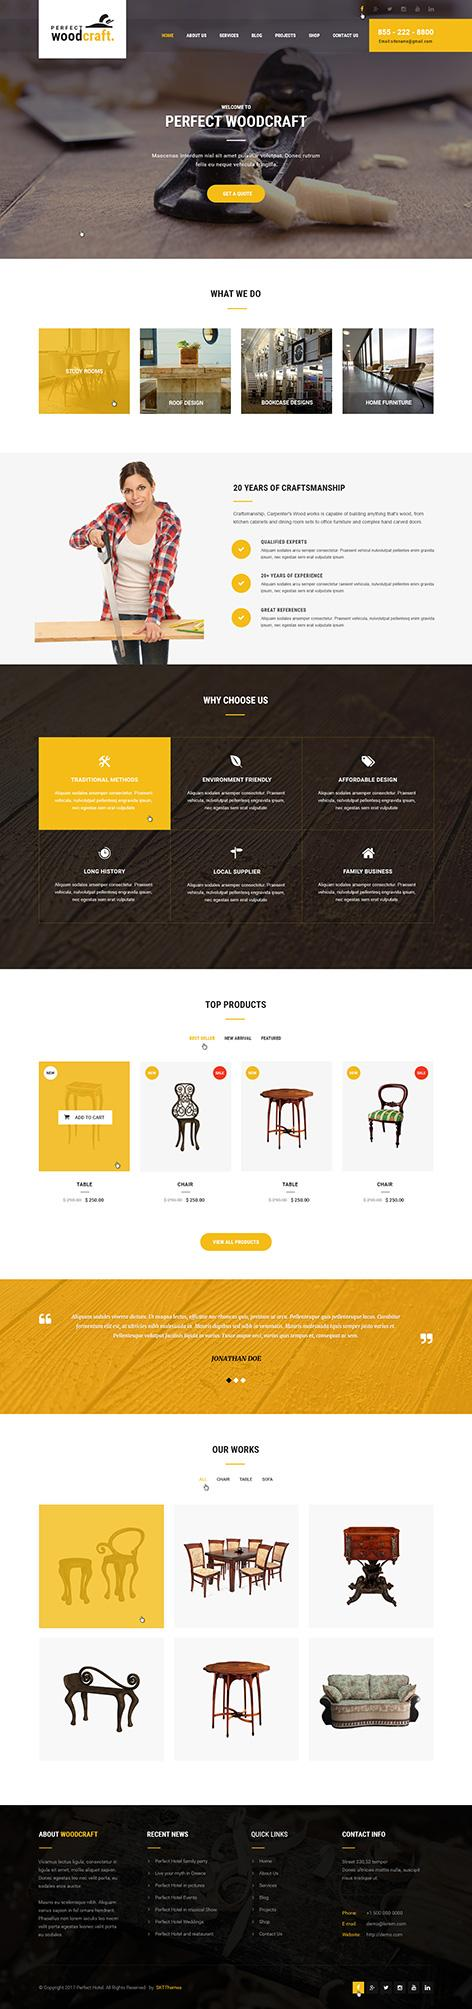 carpenter wordpress theme1 - WoodCraft